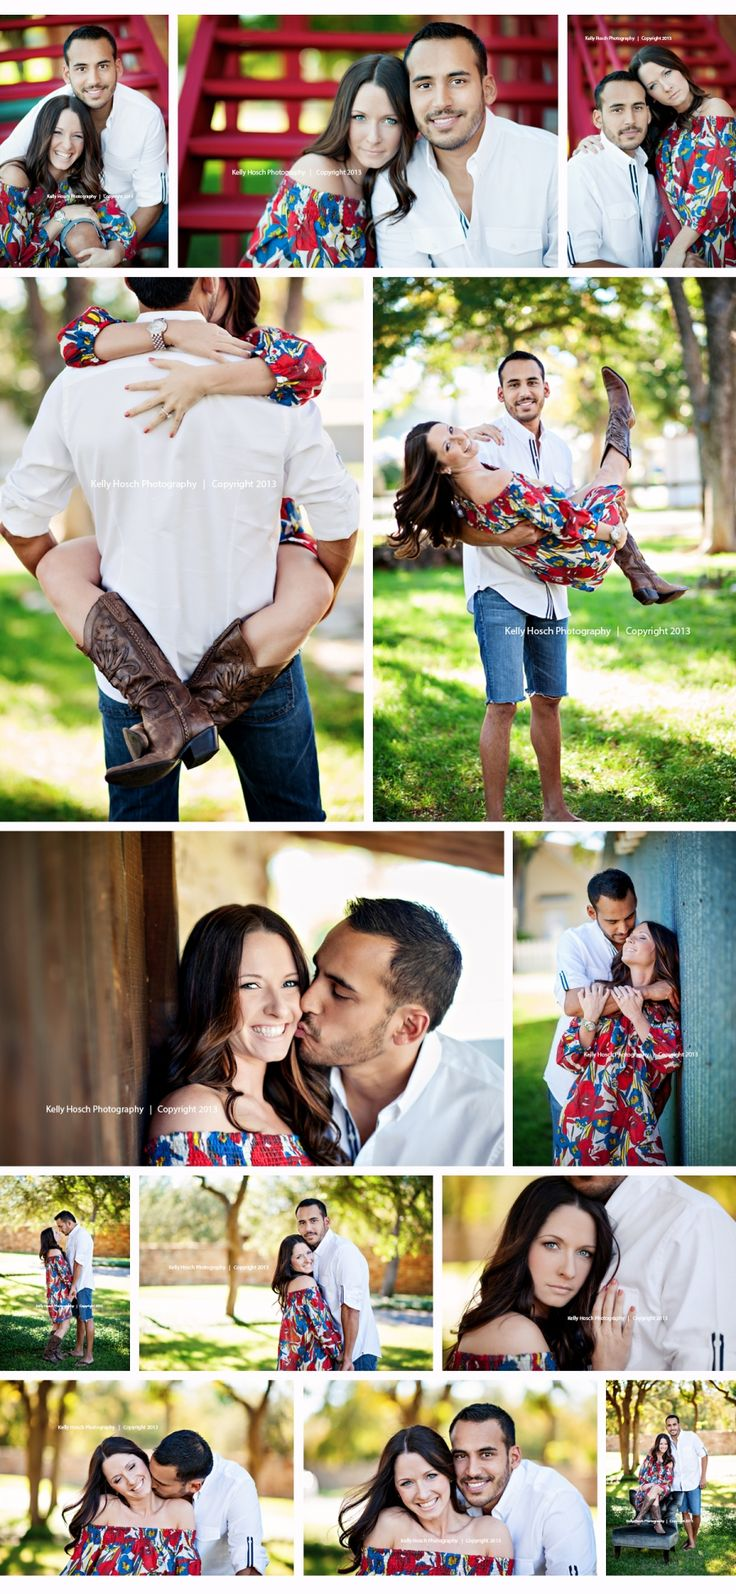 Super cute outdoor engagement photos. Great pose ideas for couples! Engagment photography | couples photography | park engagement photos |  Jonathan + Elizabeth | Salado Texas Photographer » Kelly Hosch Photography | Temple, Belton, and Salado Texas Portrait and Wedding Photographer